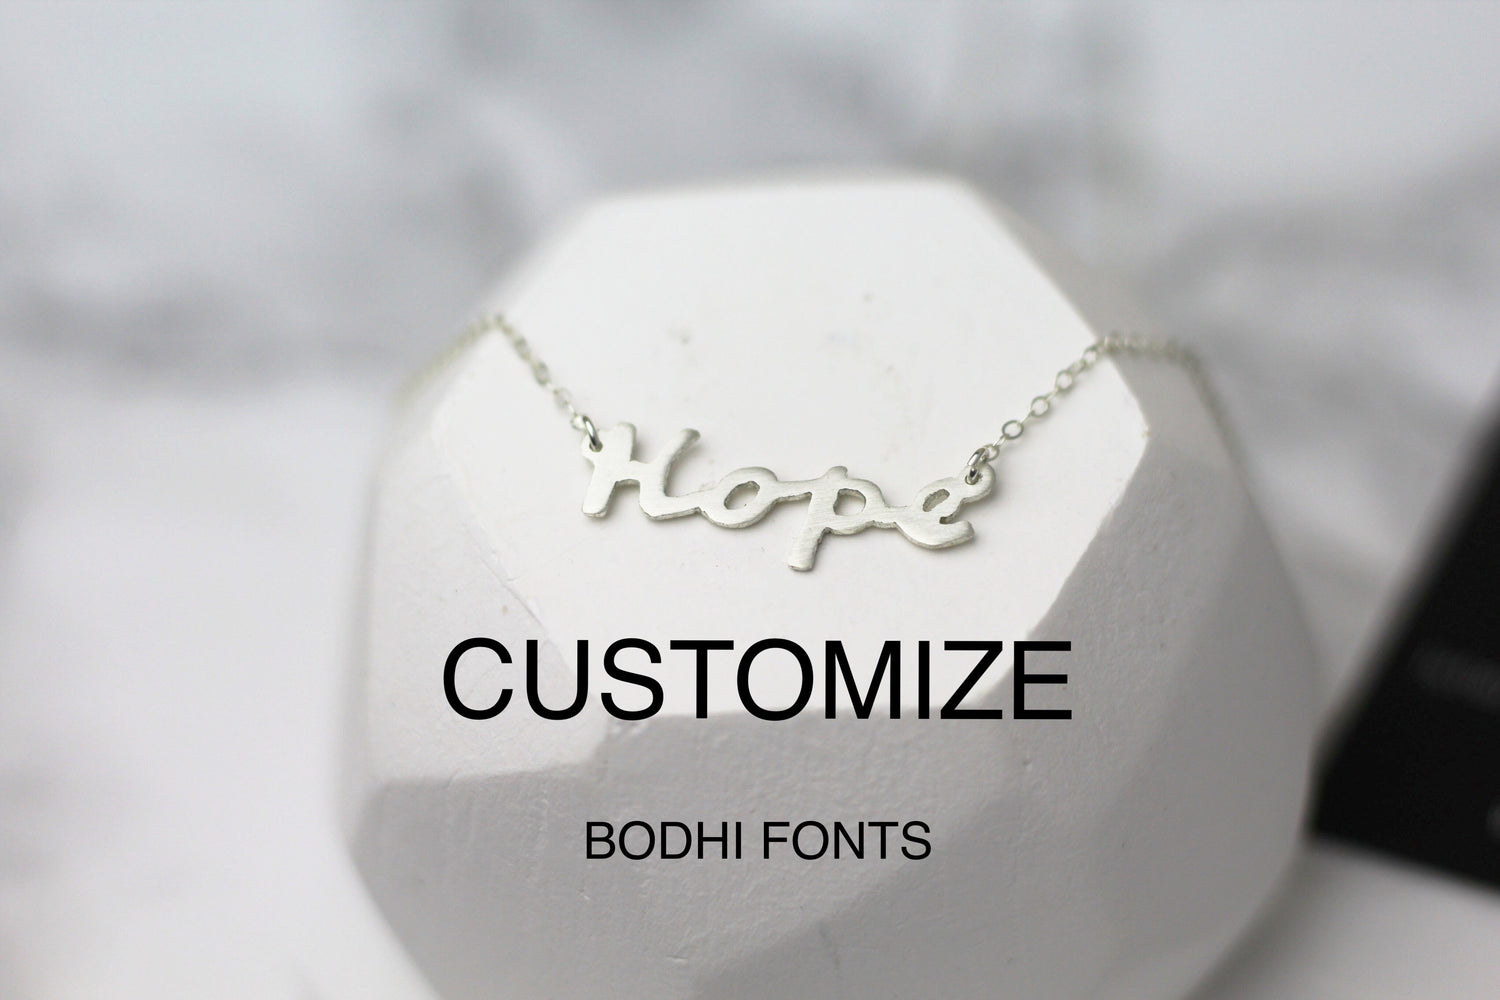 CUSTOMIZED Mantra Hand-Sawed Necklace (Bodhi Font)